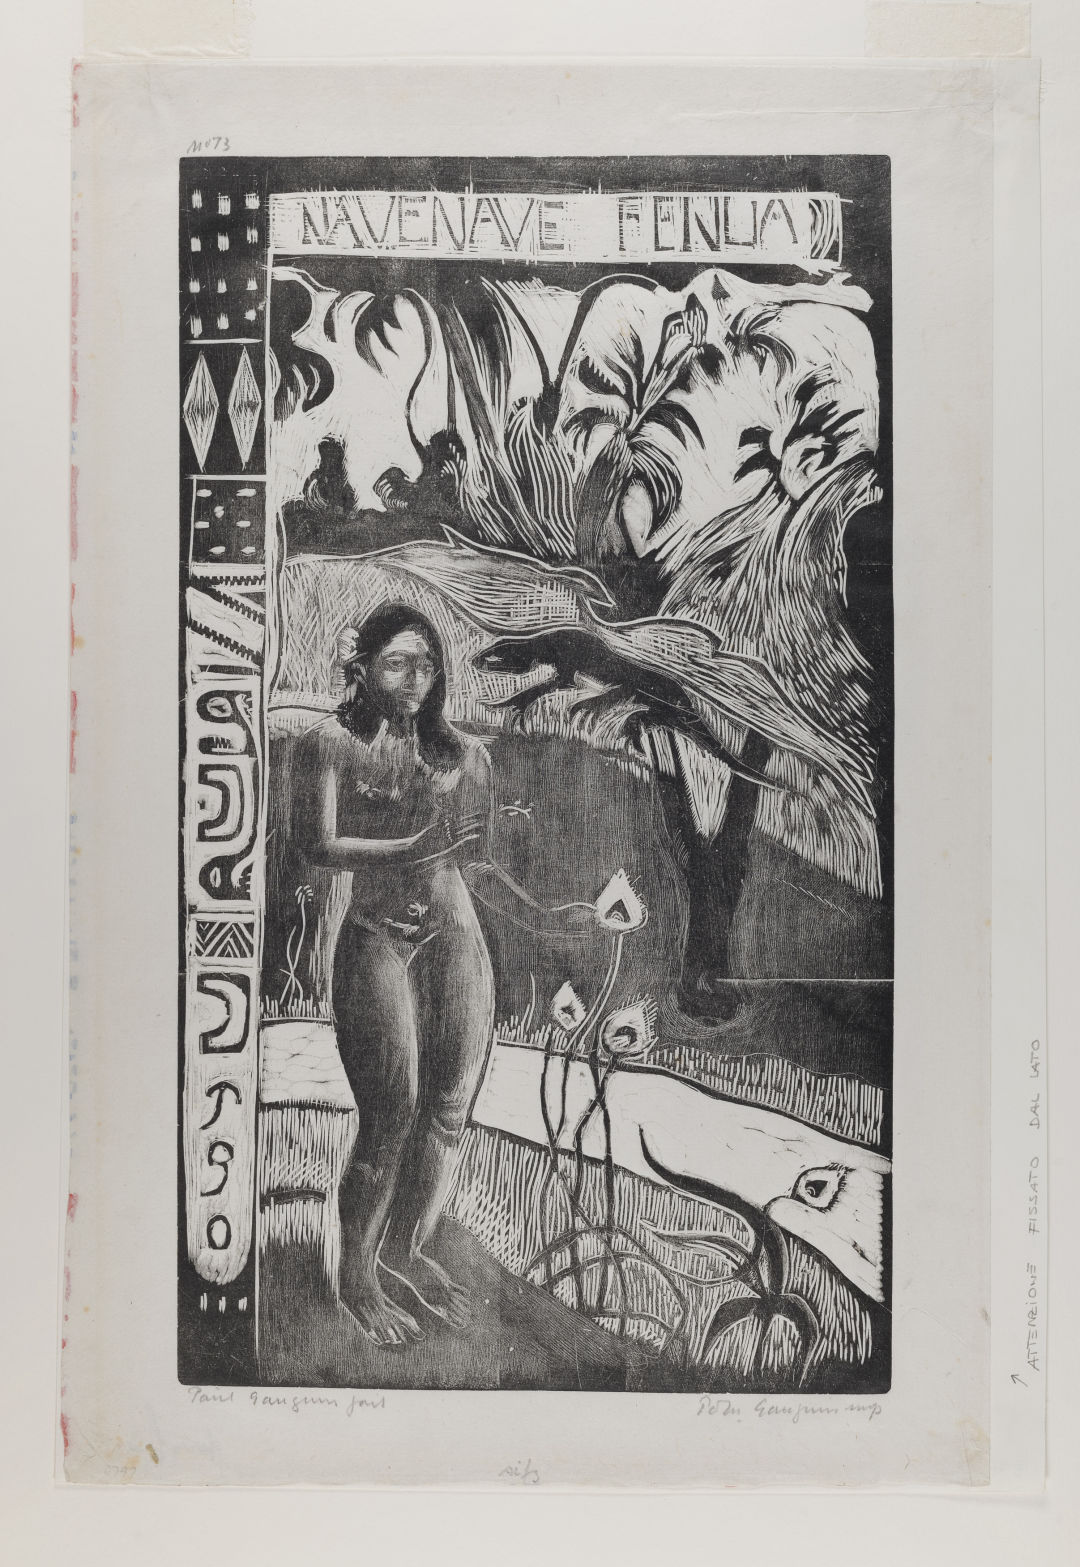 Gauguin paul  nave nave fenua  delectable earth  b99.1652 1 na6j42